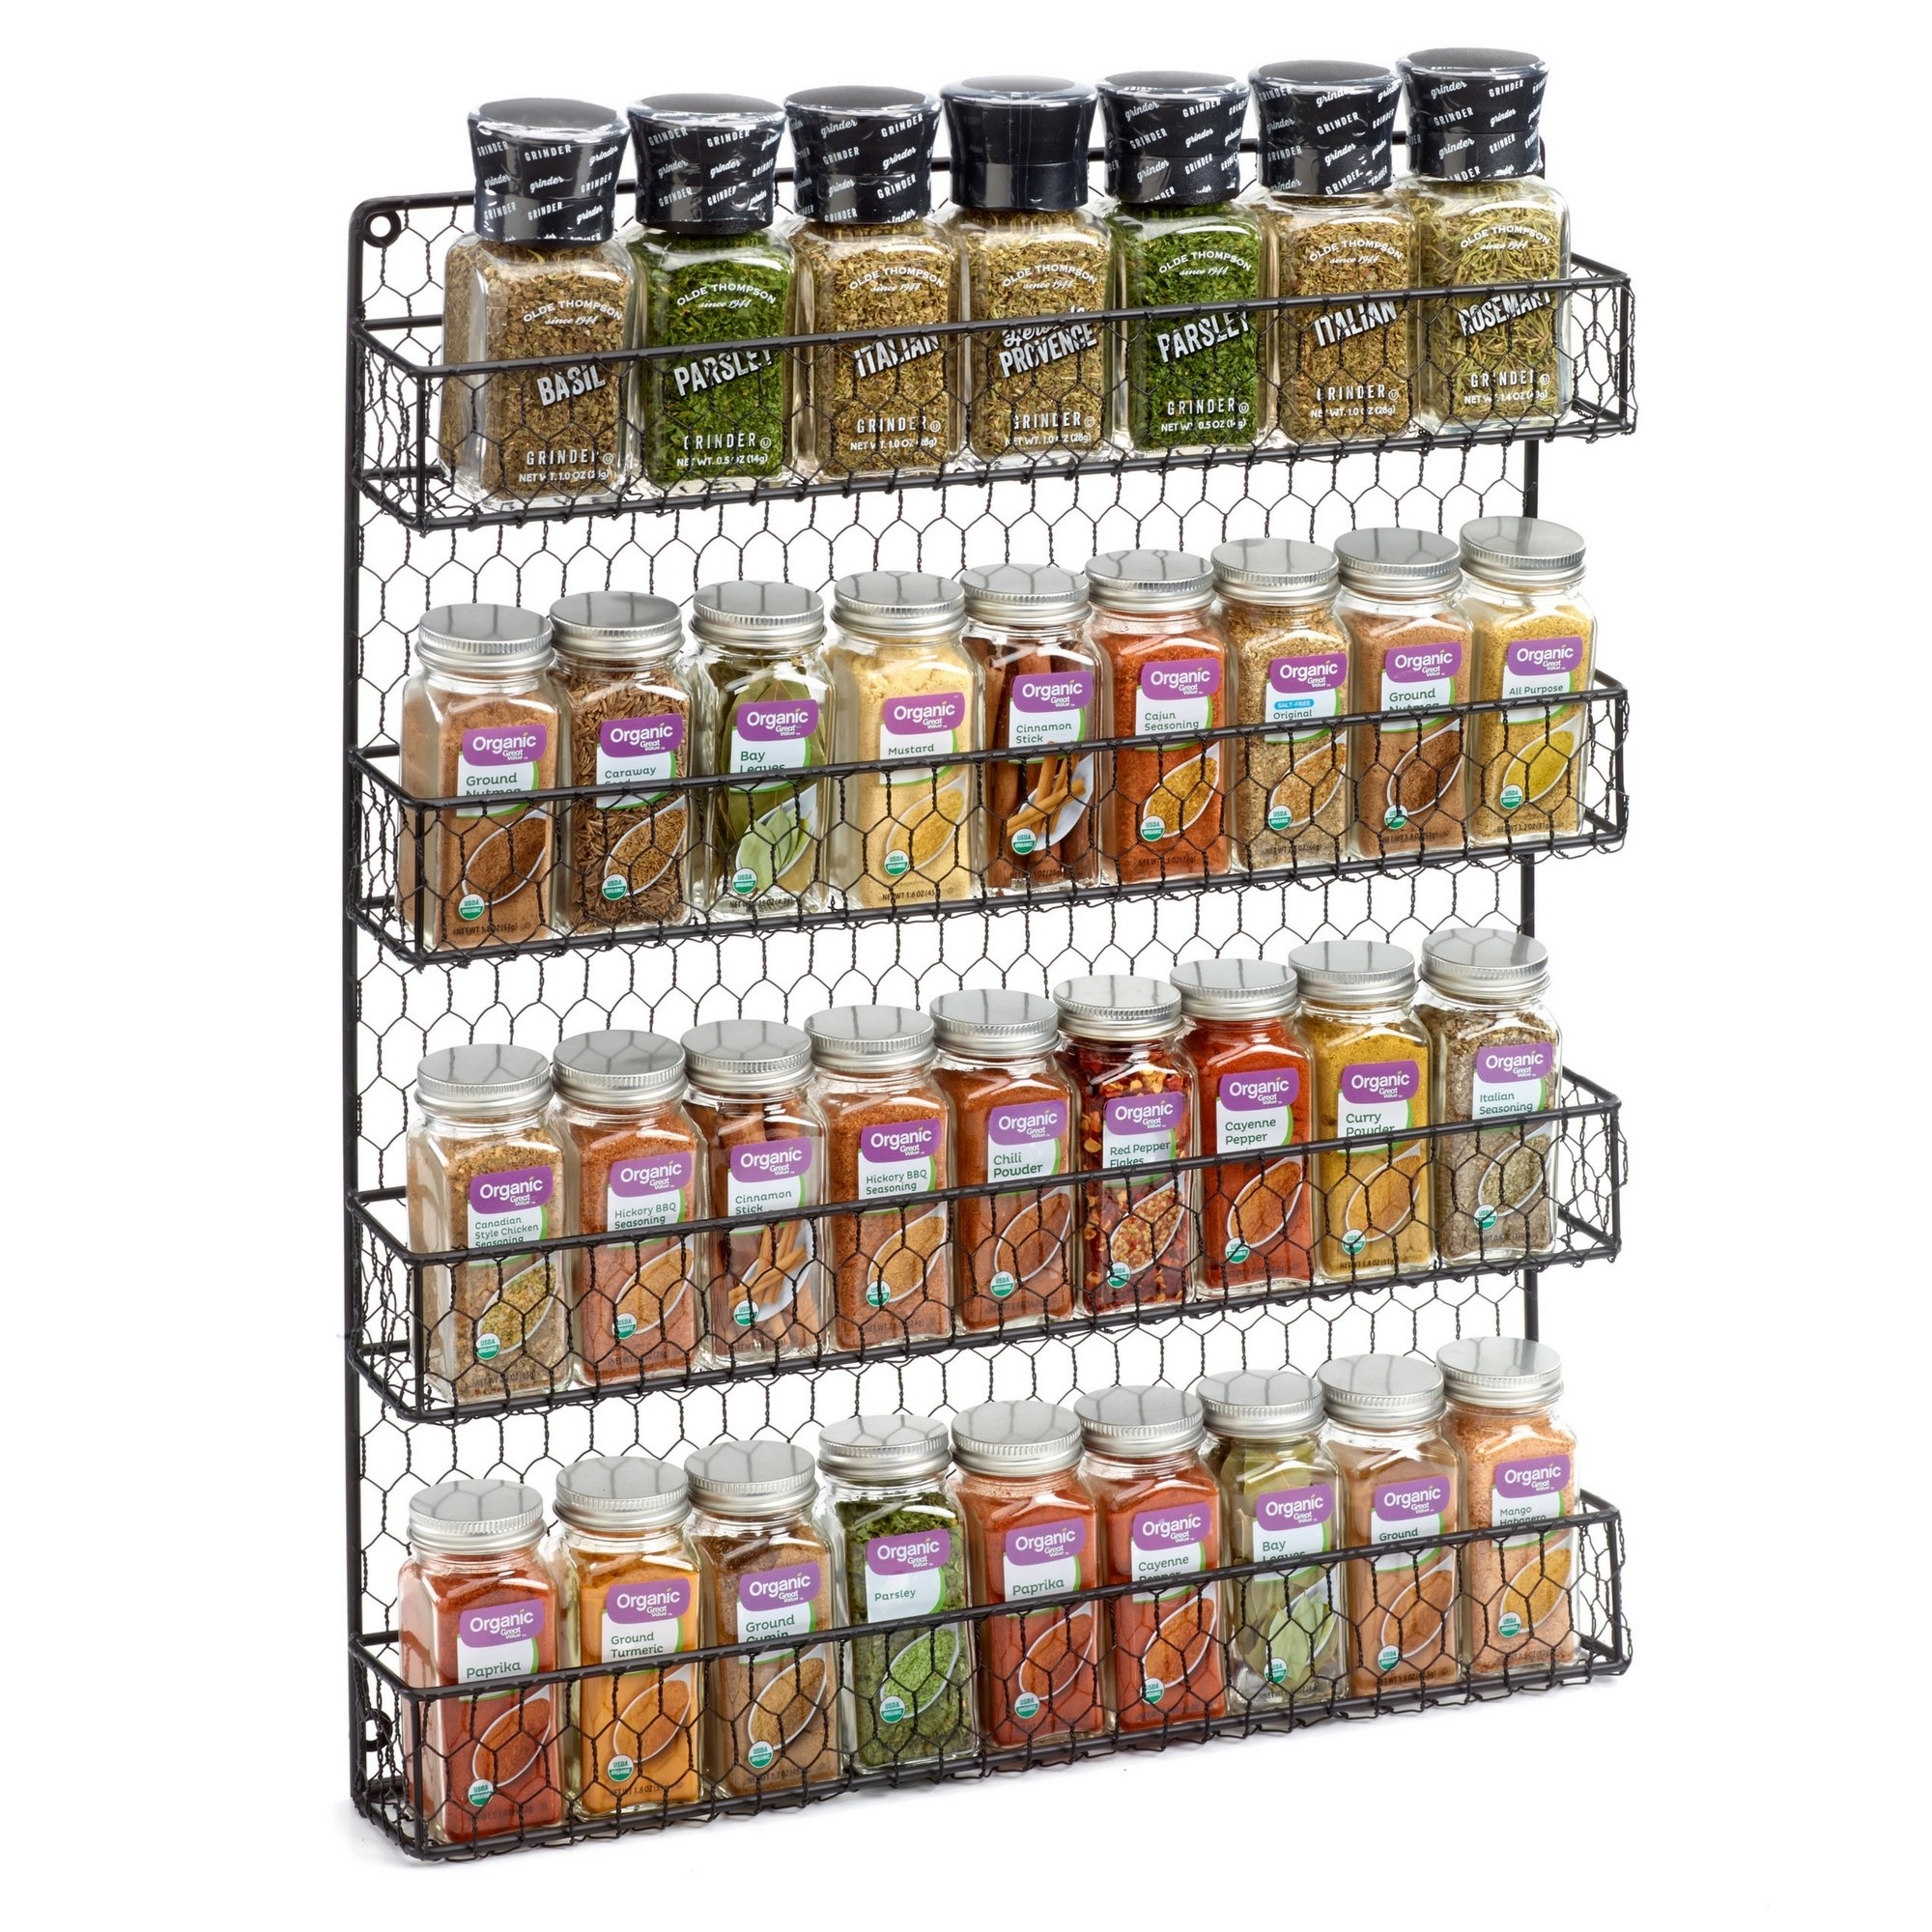 4 Tier Country Metal Chicken Wire Spice Rack from 1790, Cabinet, Wall, or Pantry Mount - This Rustic Hanging Organizer is Tiered for Maximum Storage -Up To 36 Herbs & Spices - Easily Mounted, Black